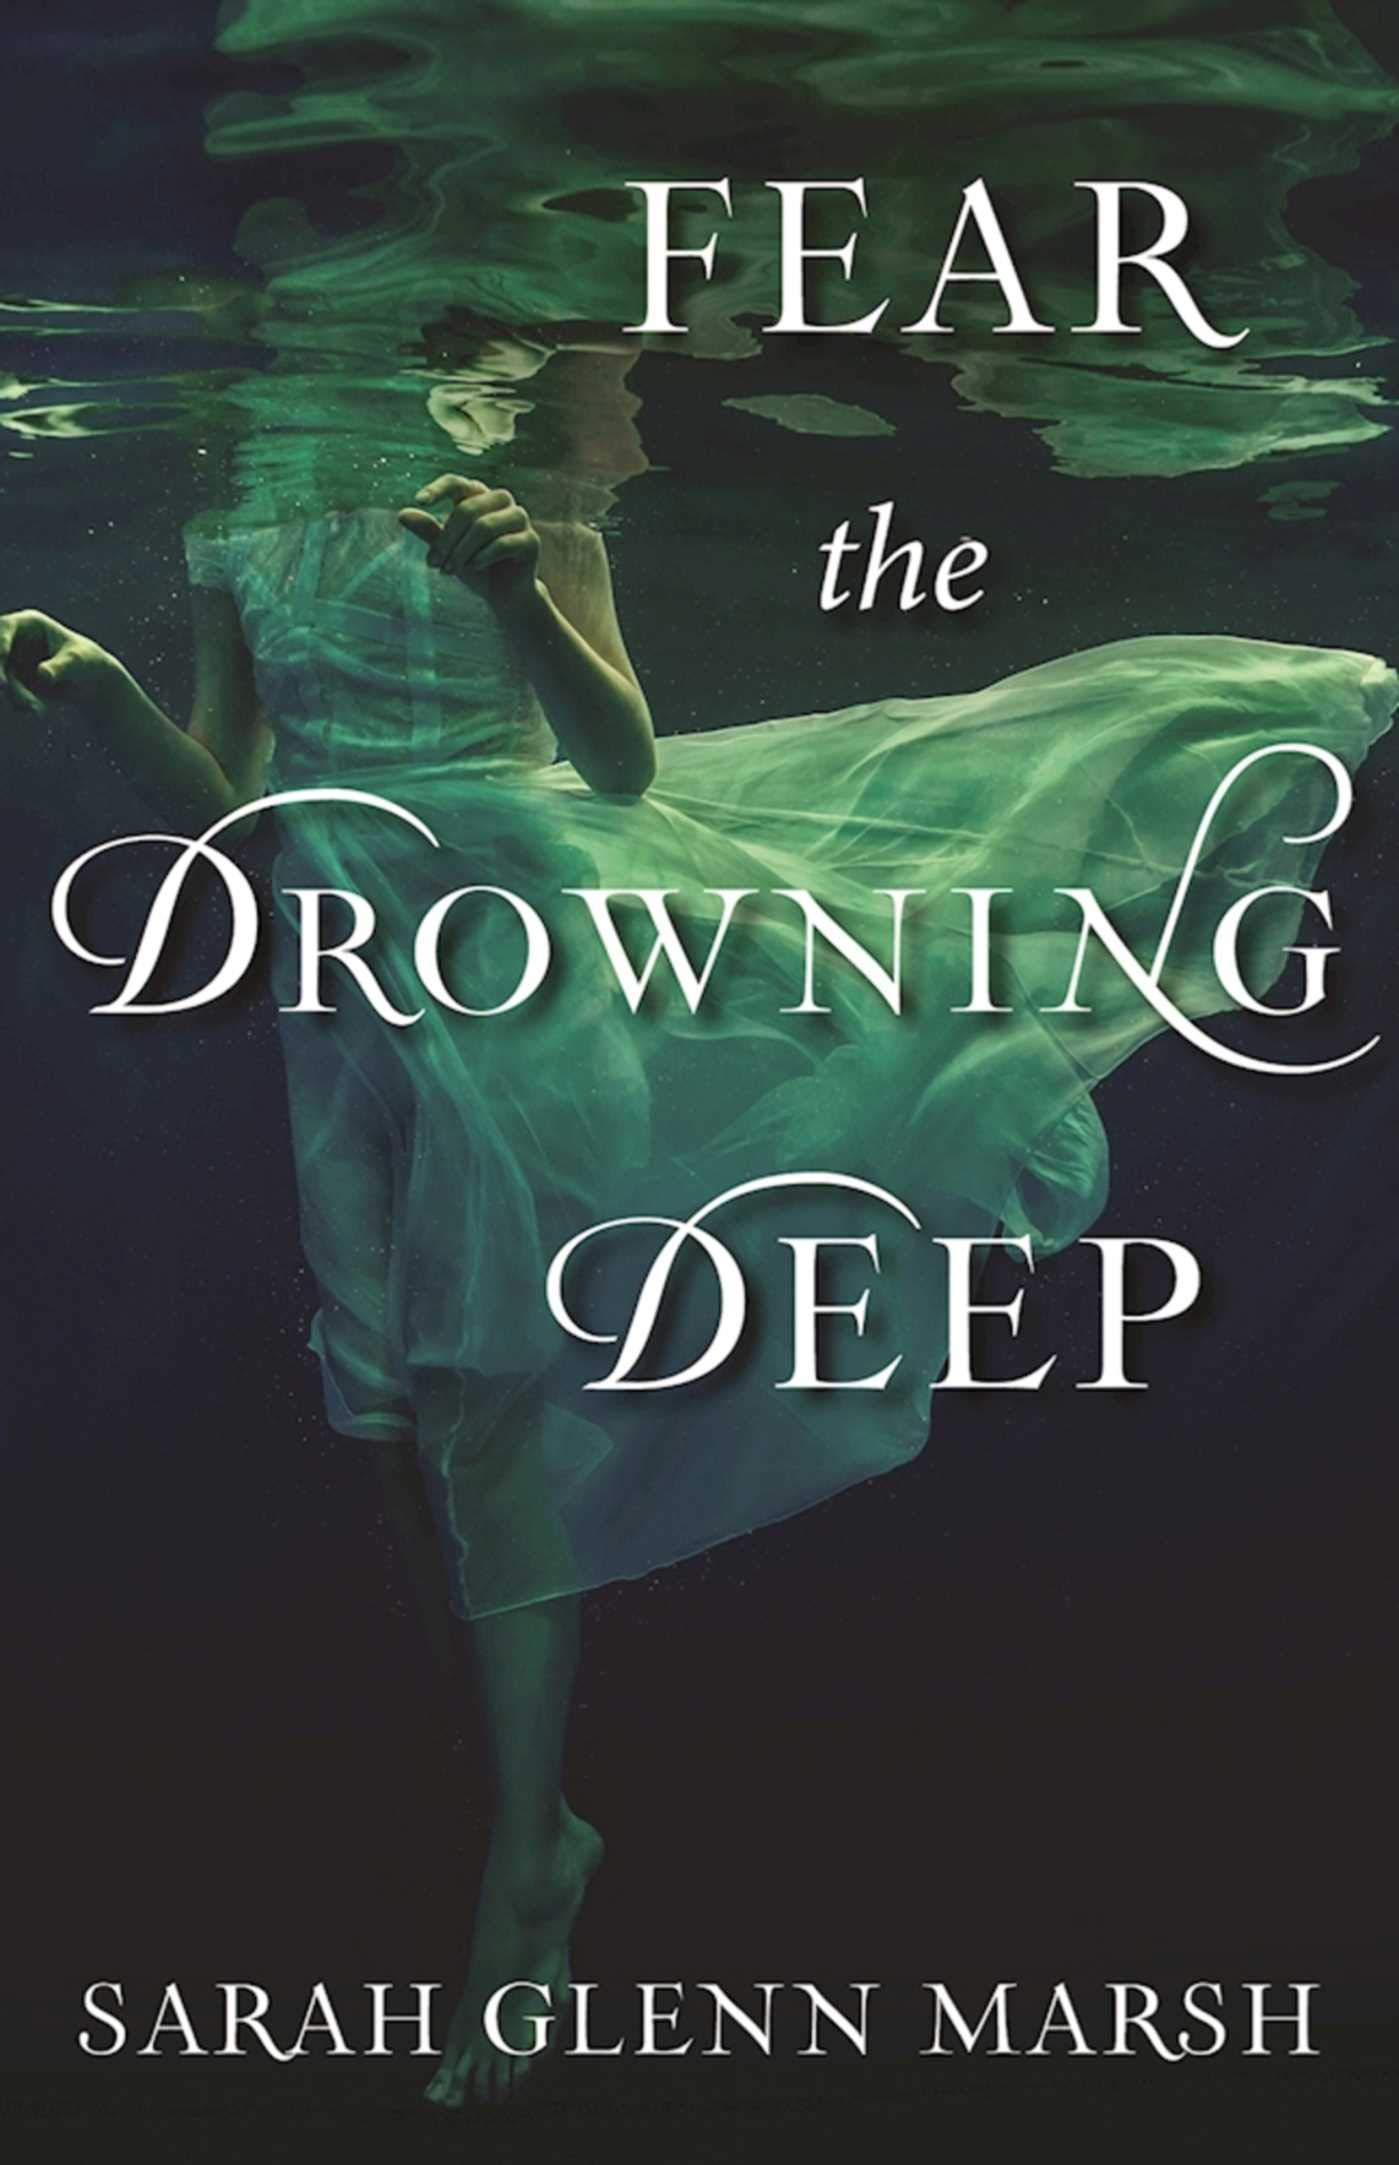 Amazon.com: Fear the Drowning Deep (9781510703483): Marsh, Sarah ...